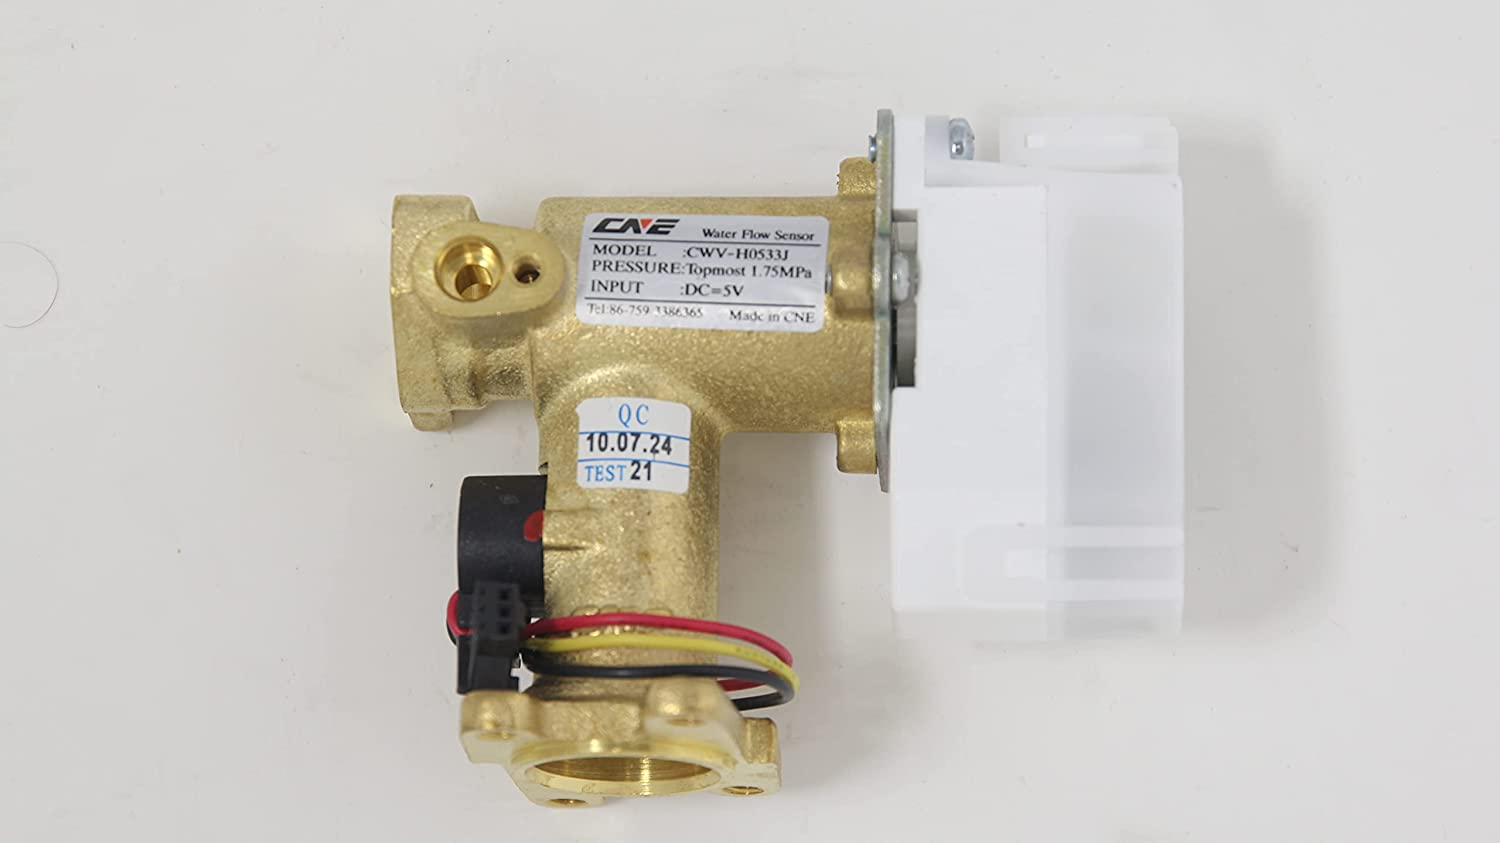 AO Smith Sale special price 100111998 - K WATER ASSEMBLY Opening large release sale VALVE